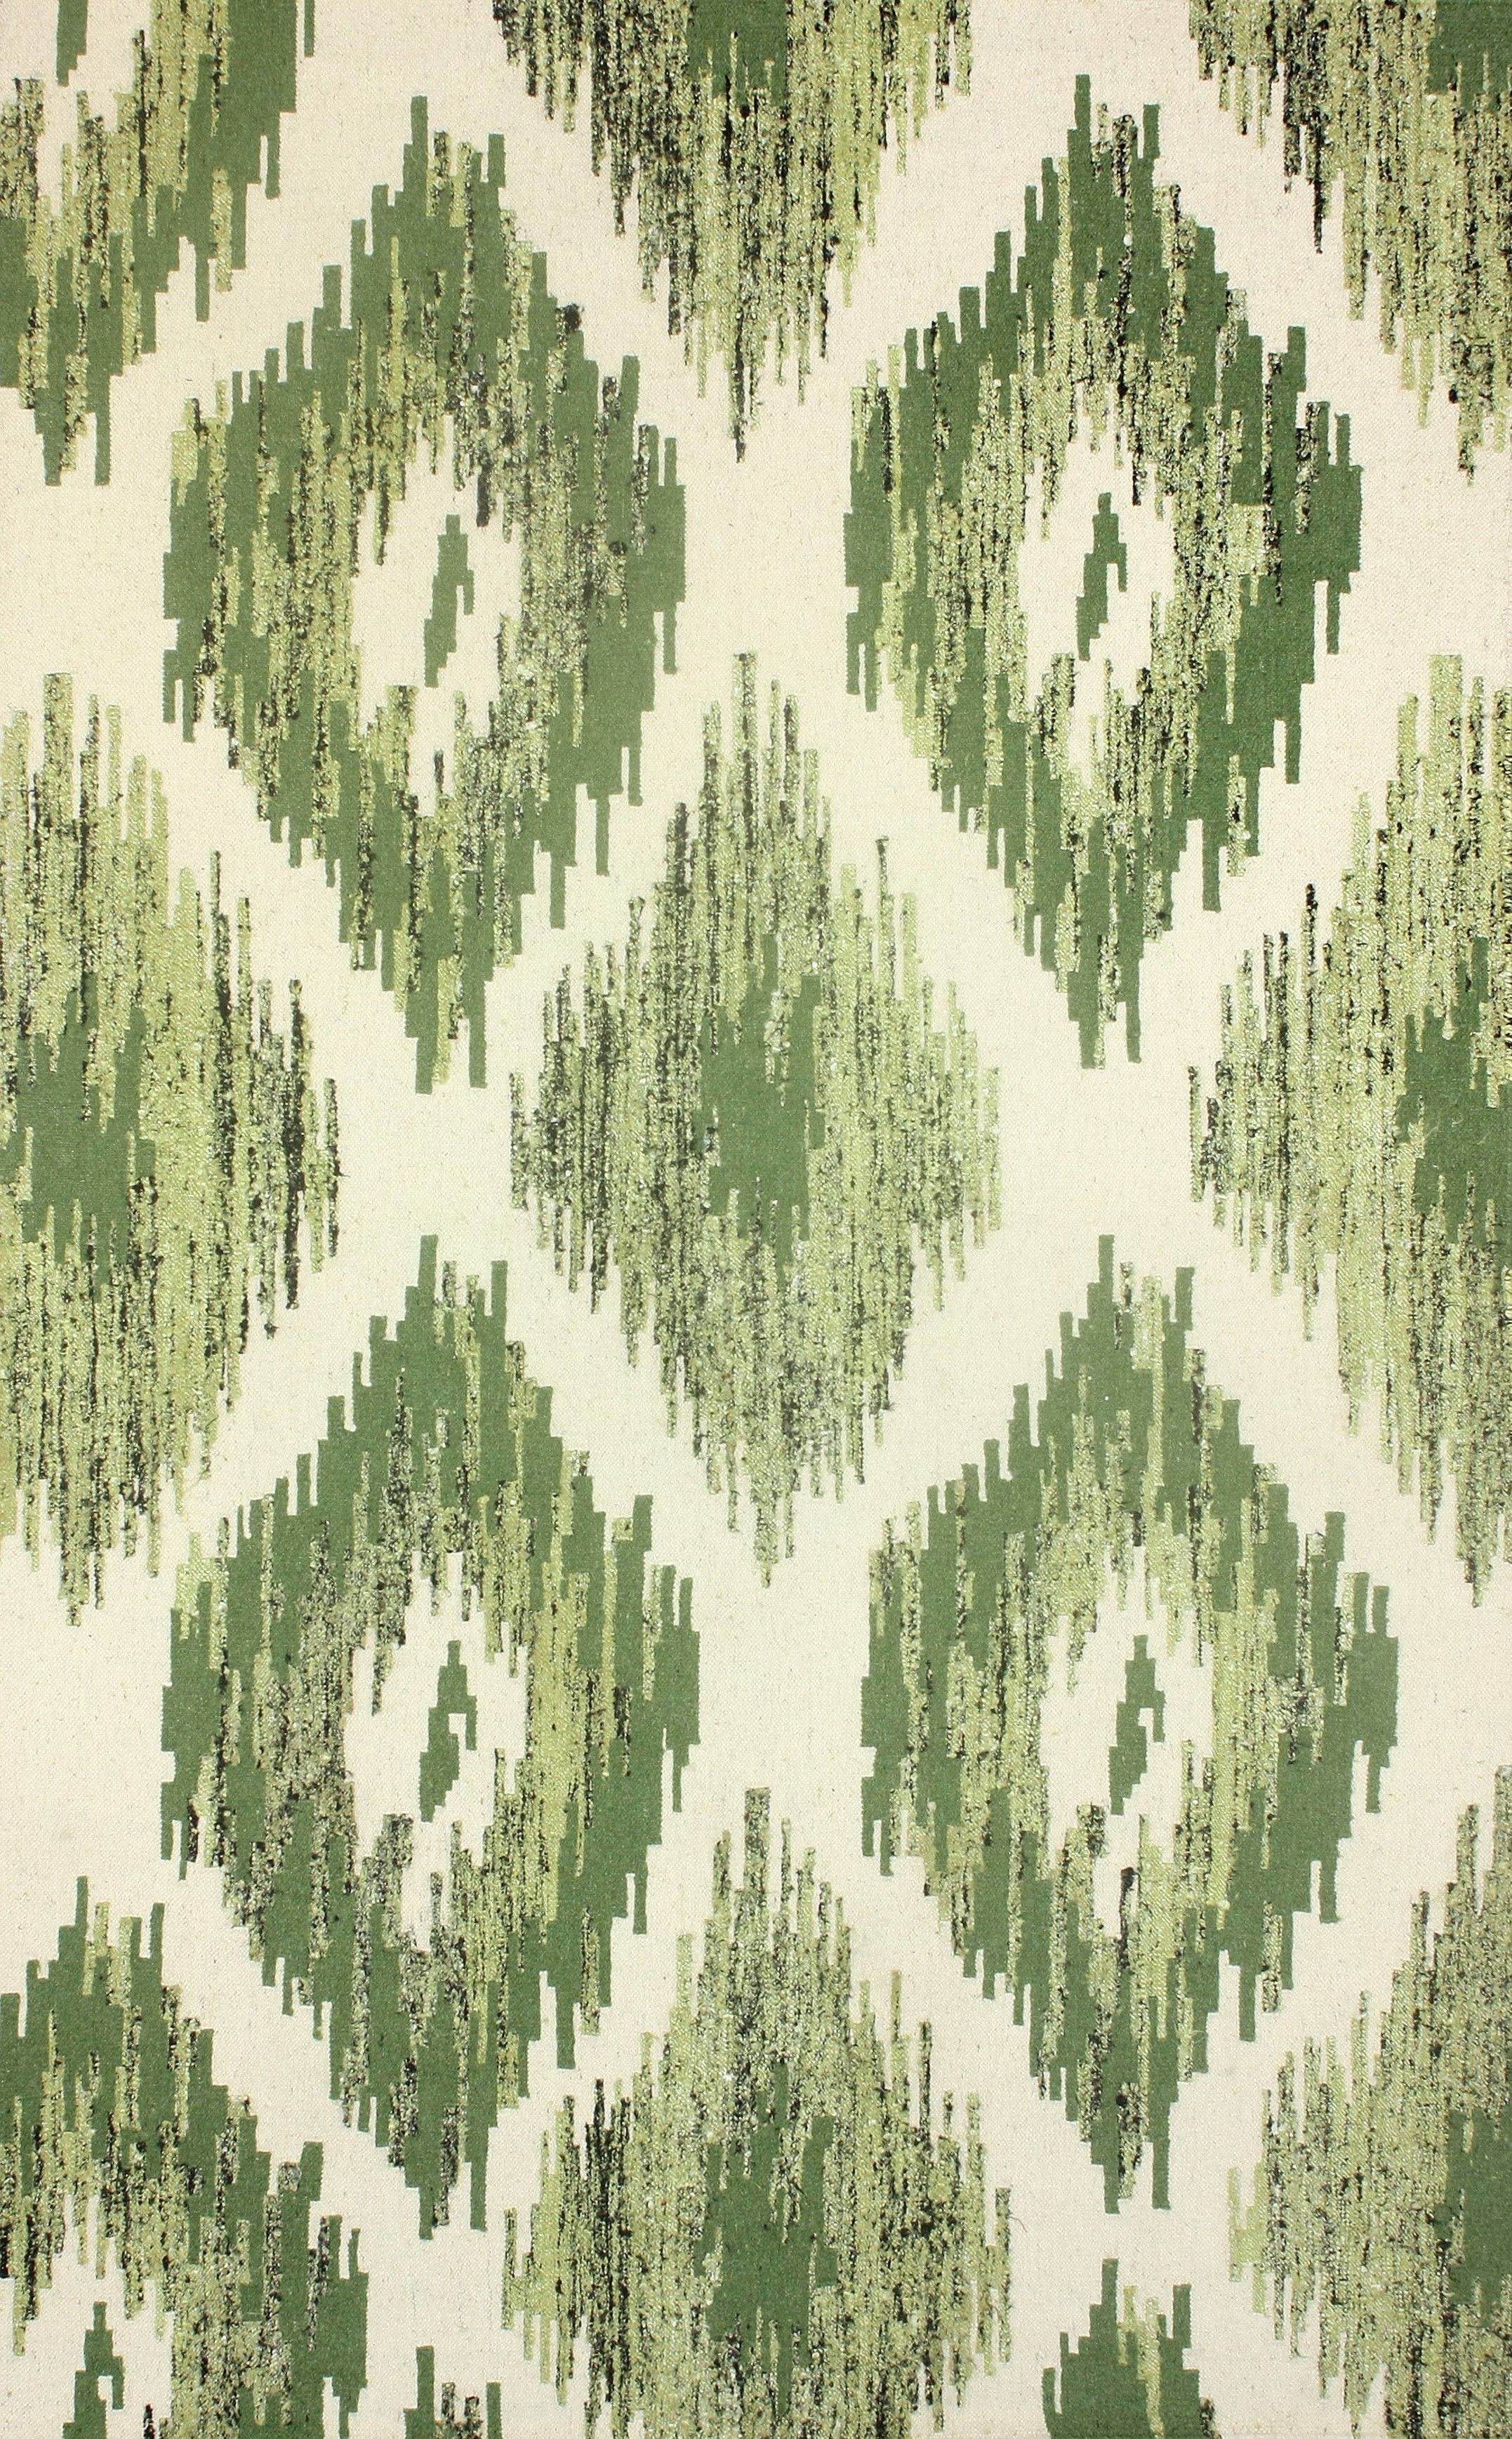 Rugs USA Jasmine FR2 Flatwoven Green Rug,80% Wool, 20% Viscose, Flatwoven, Contemporary, home decor, DIY, interior design.